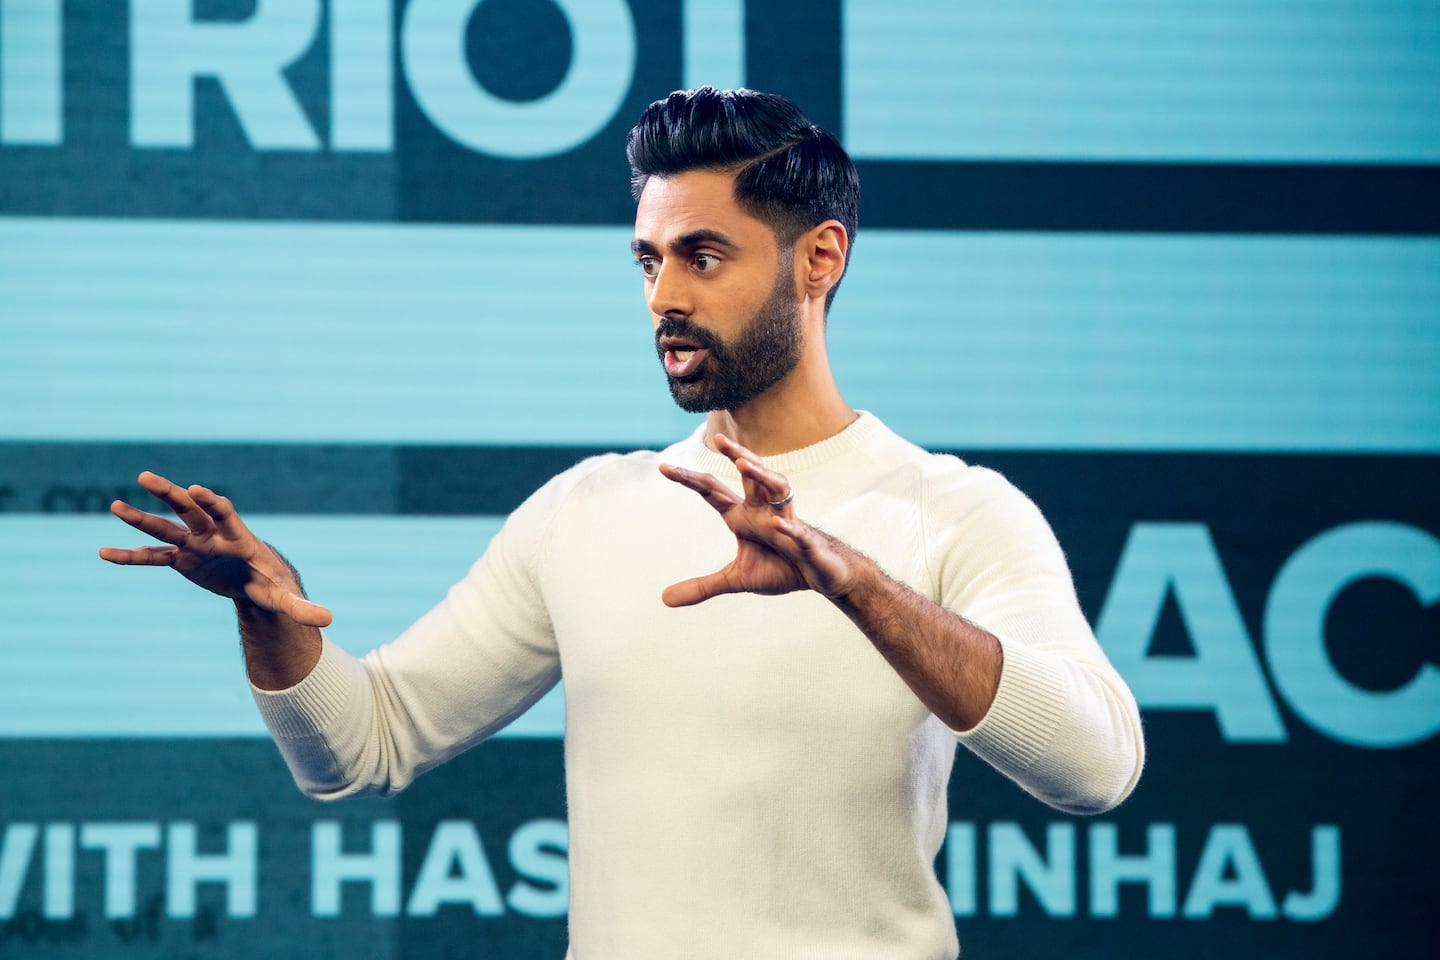 How Hasan Minhaj's Netflix show 'Patriot Act' is different from other comedy shows